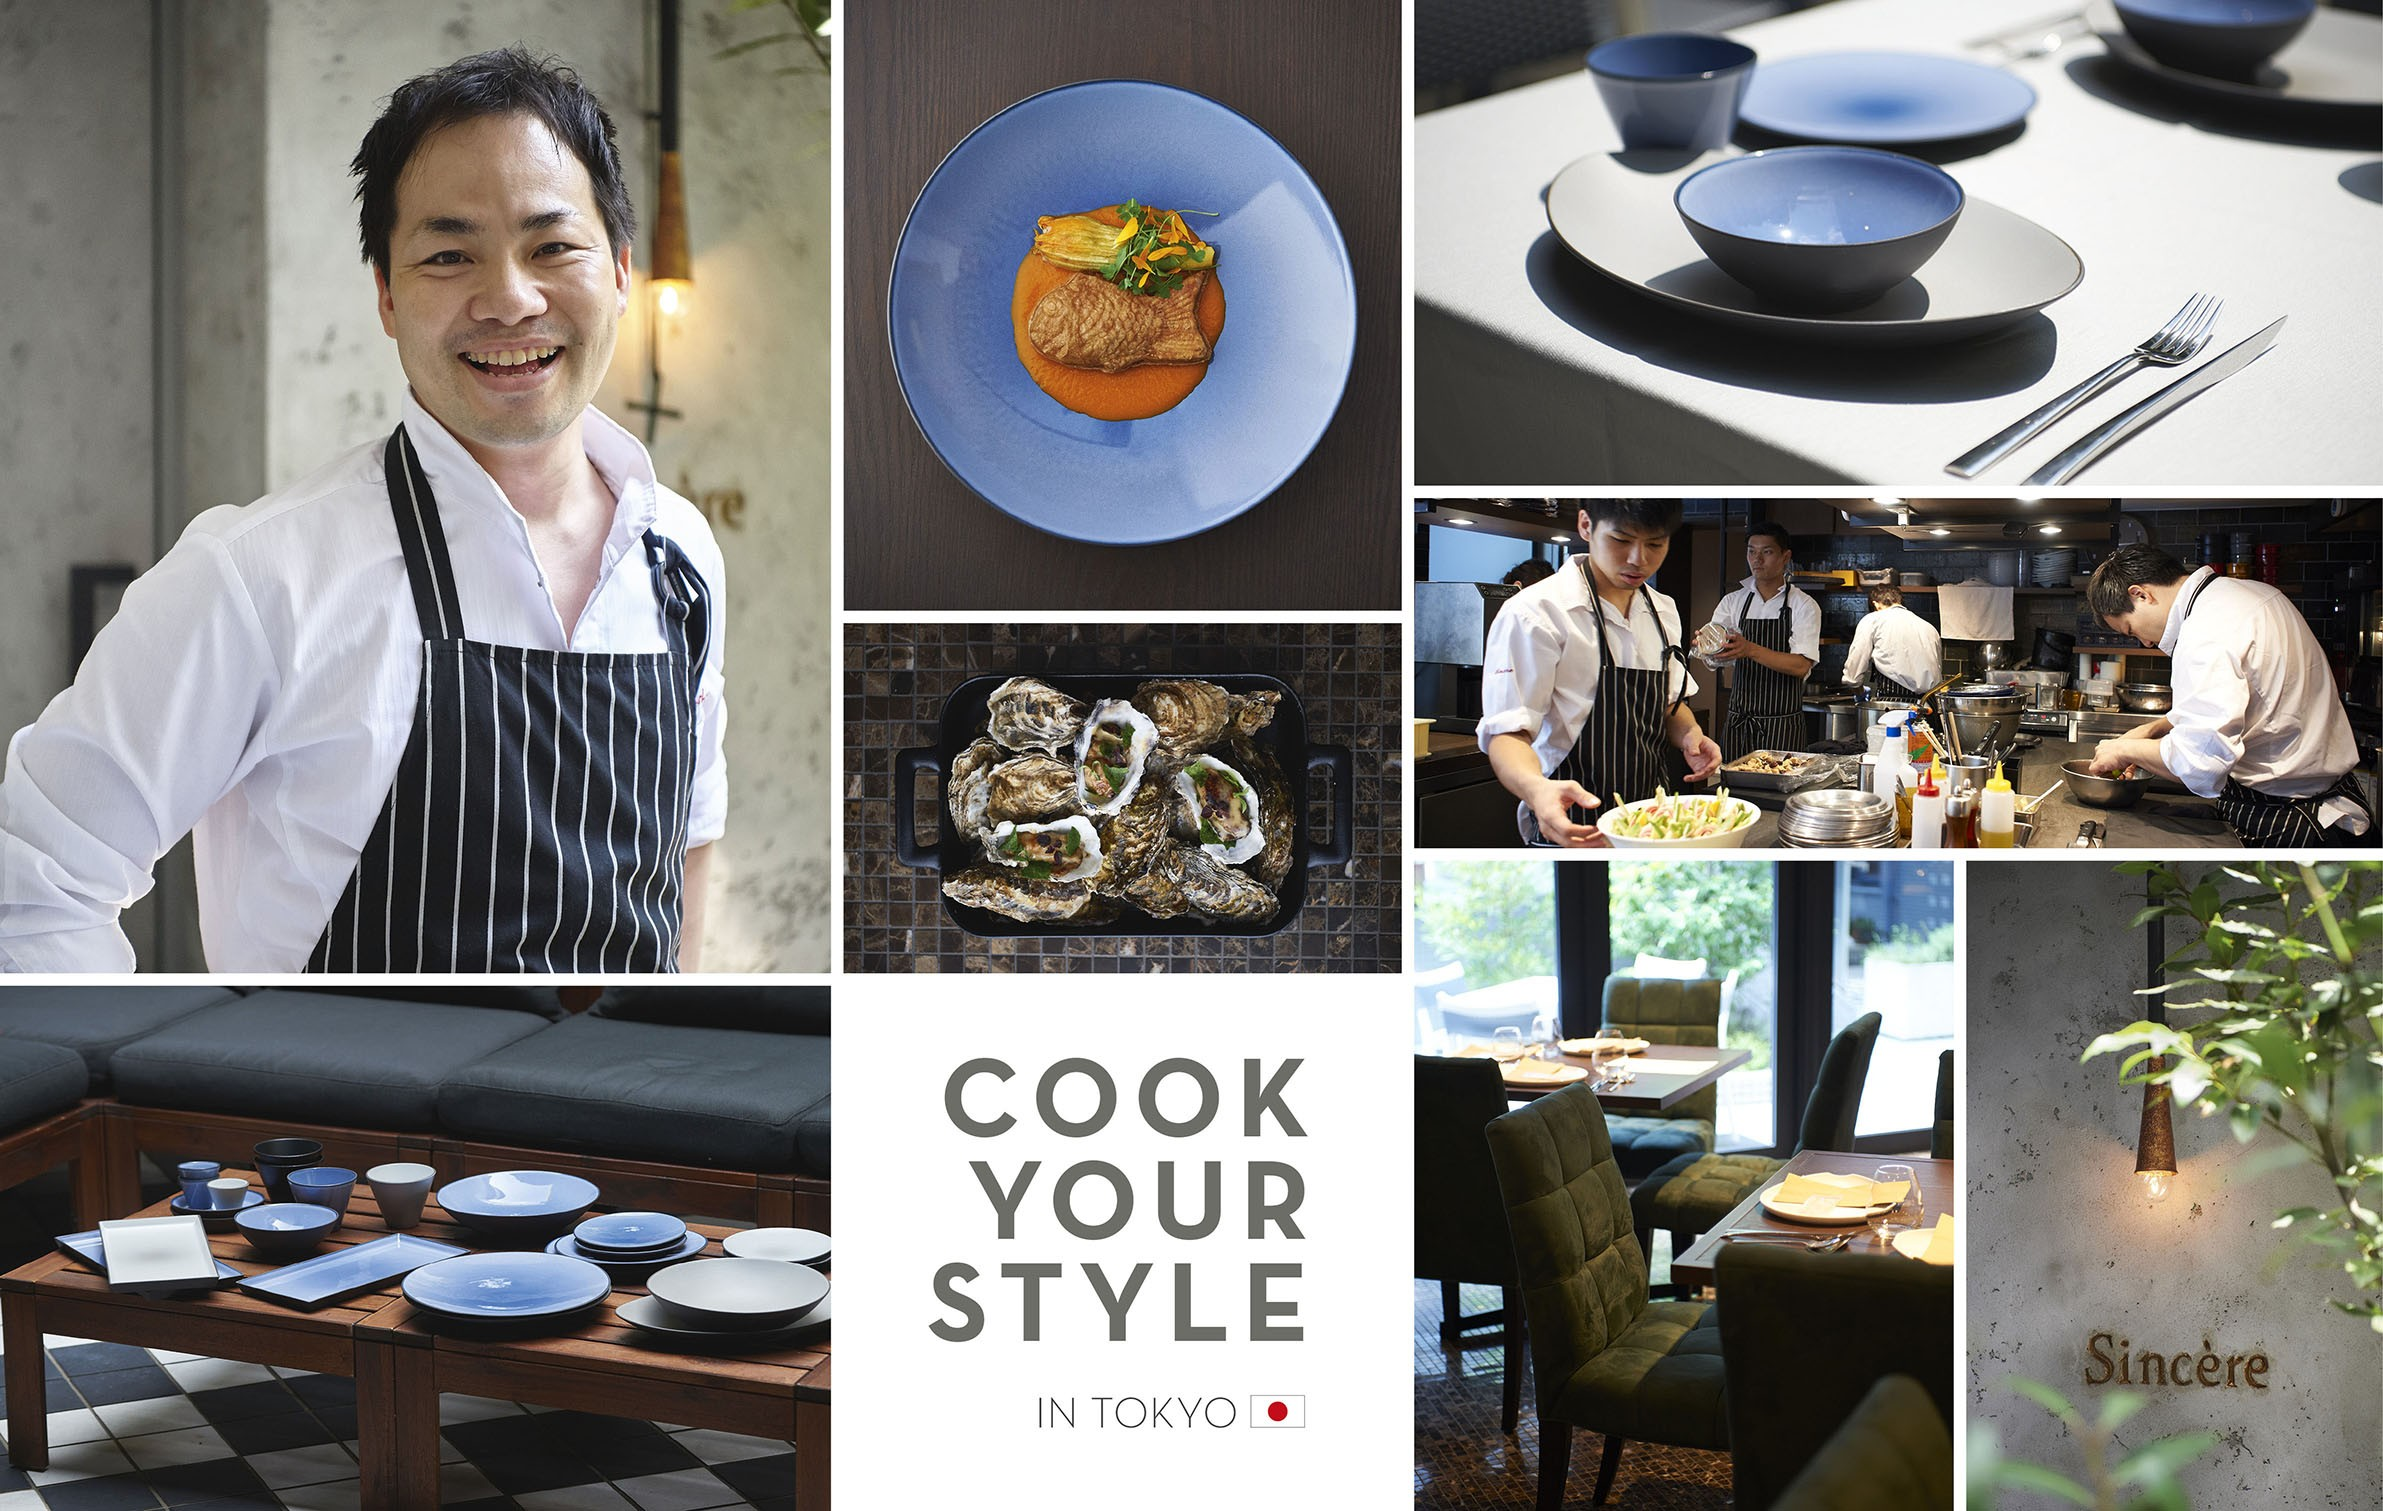 cook your style in tokyo - sincere